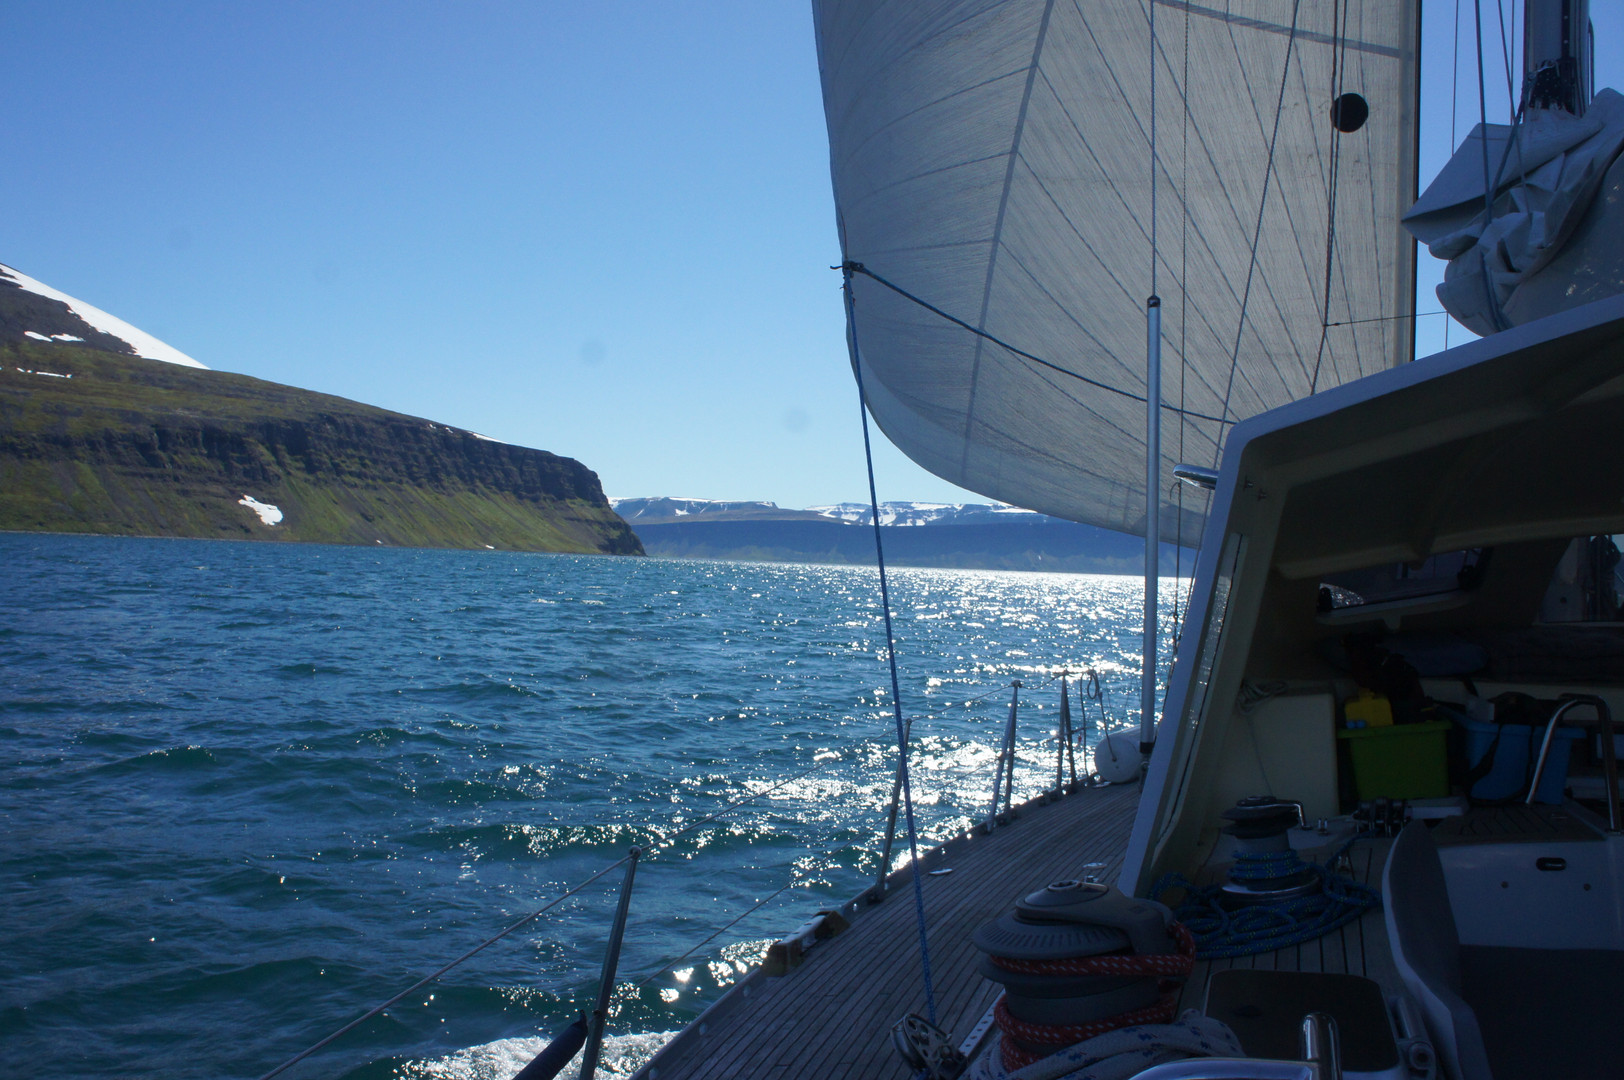 Cool sailing in the Joküllsfjord